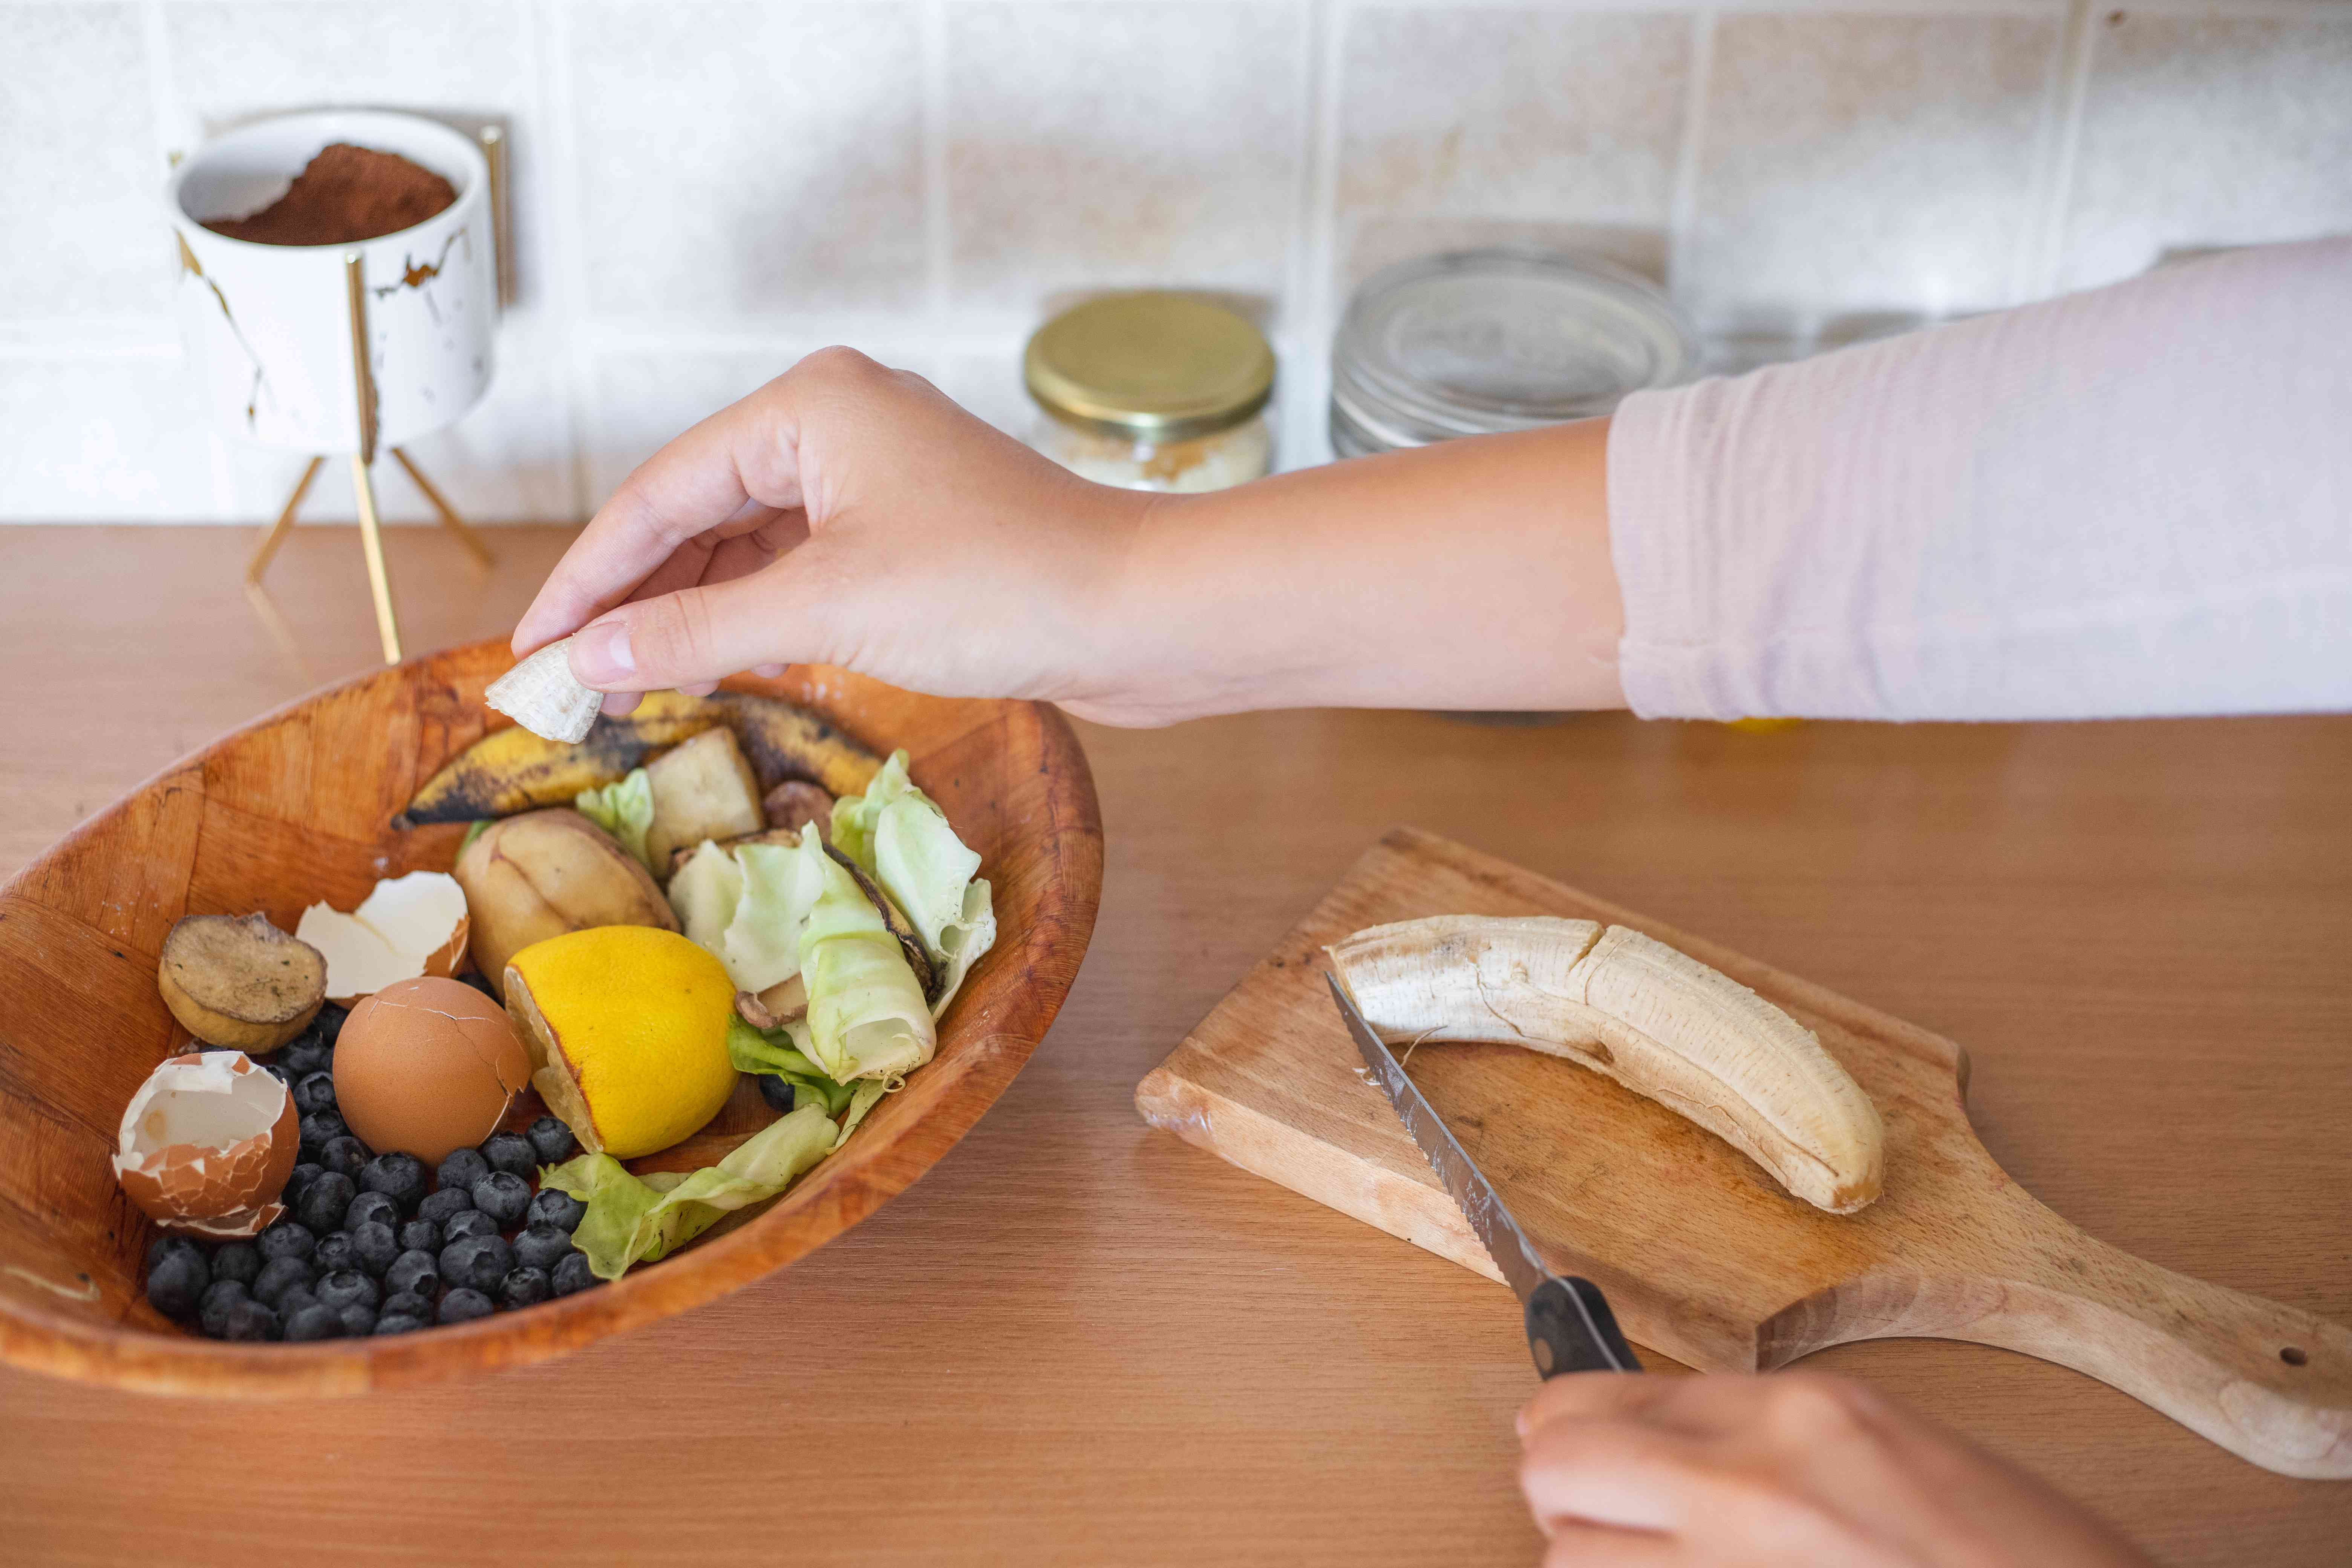 person in kitchen puts old food scraps and egg shells into bowl for composting later